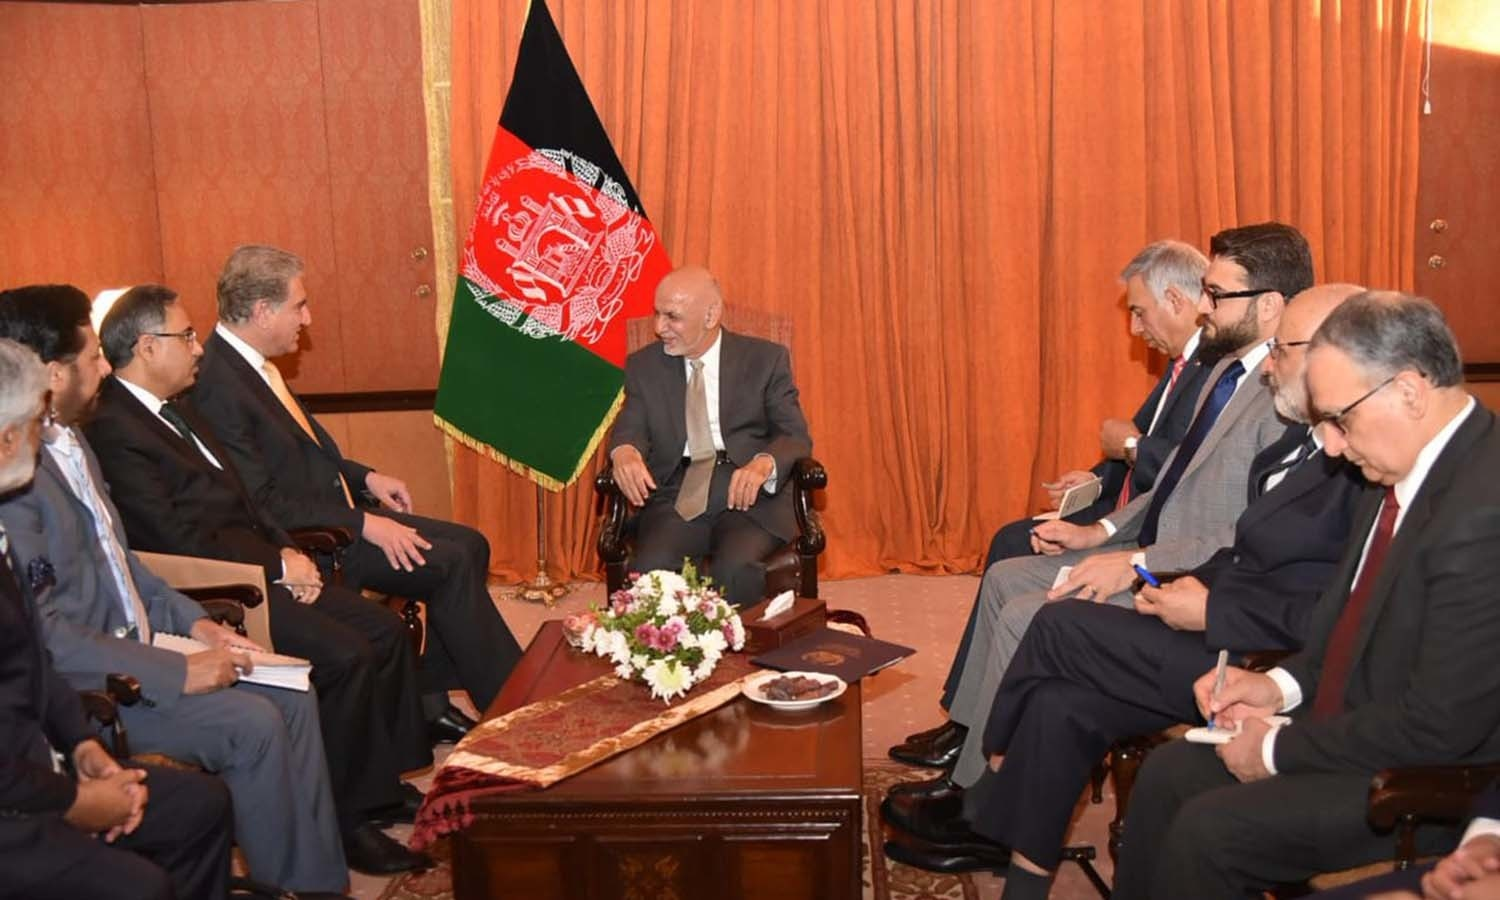 President Ghani meets Foreign Minister Shah Mahmood Qureshi. — Photo: GoP Twitter